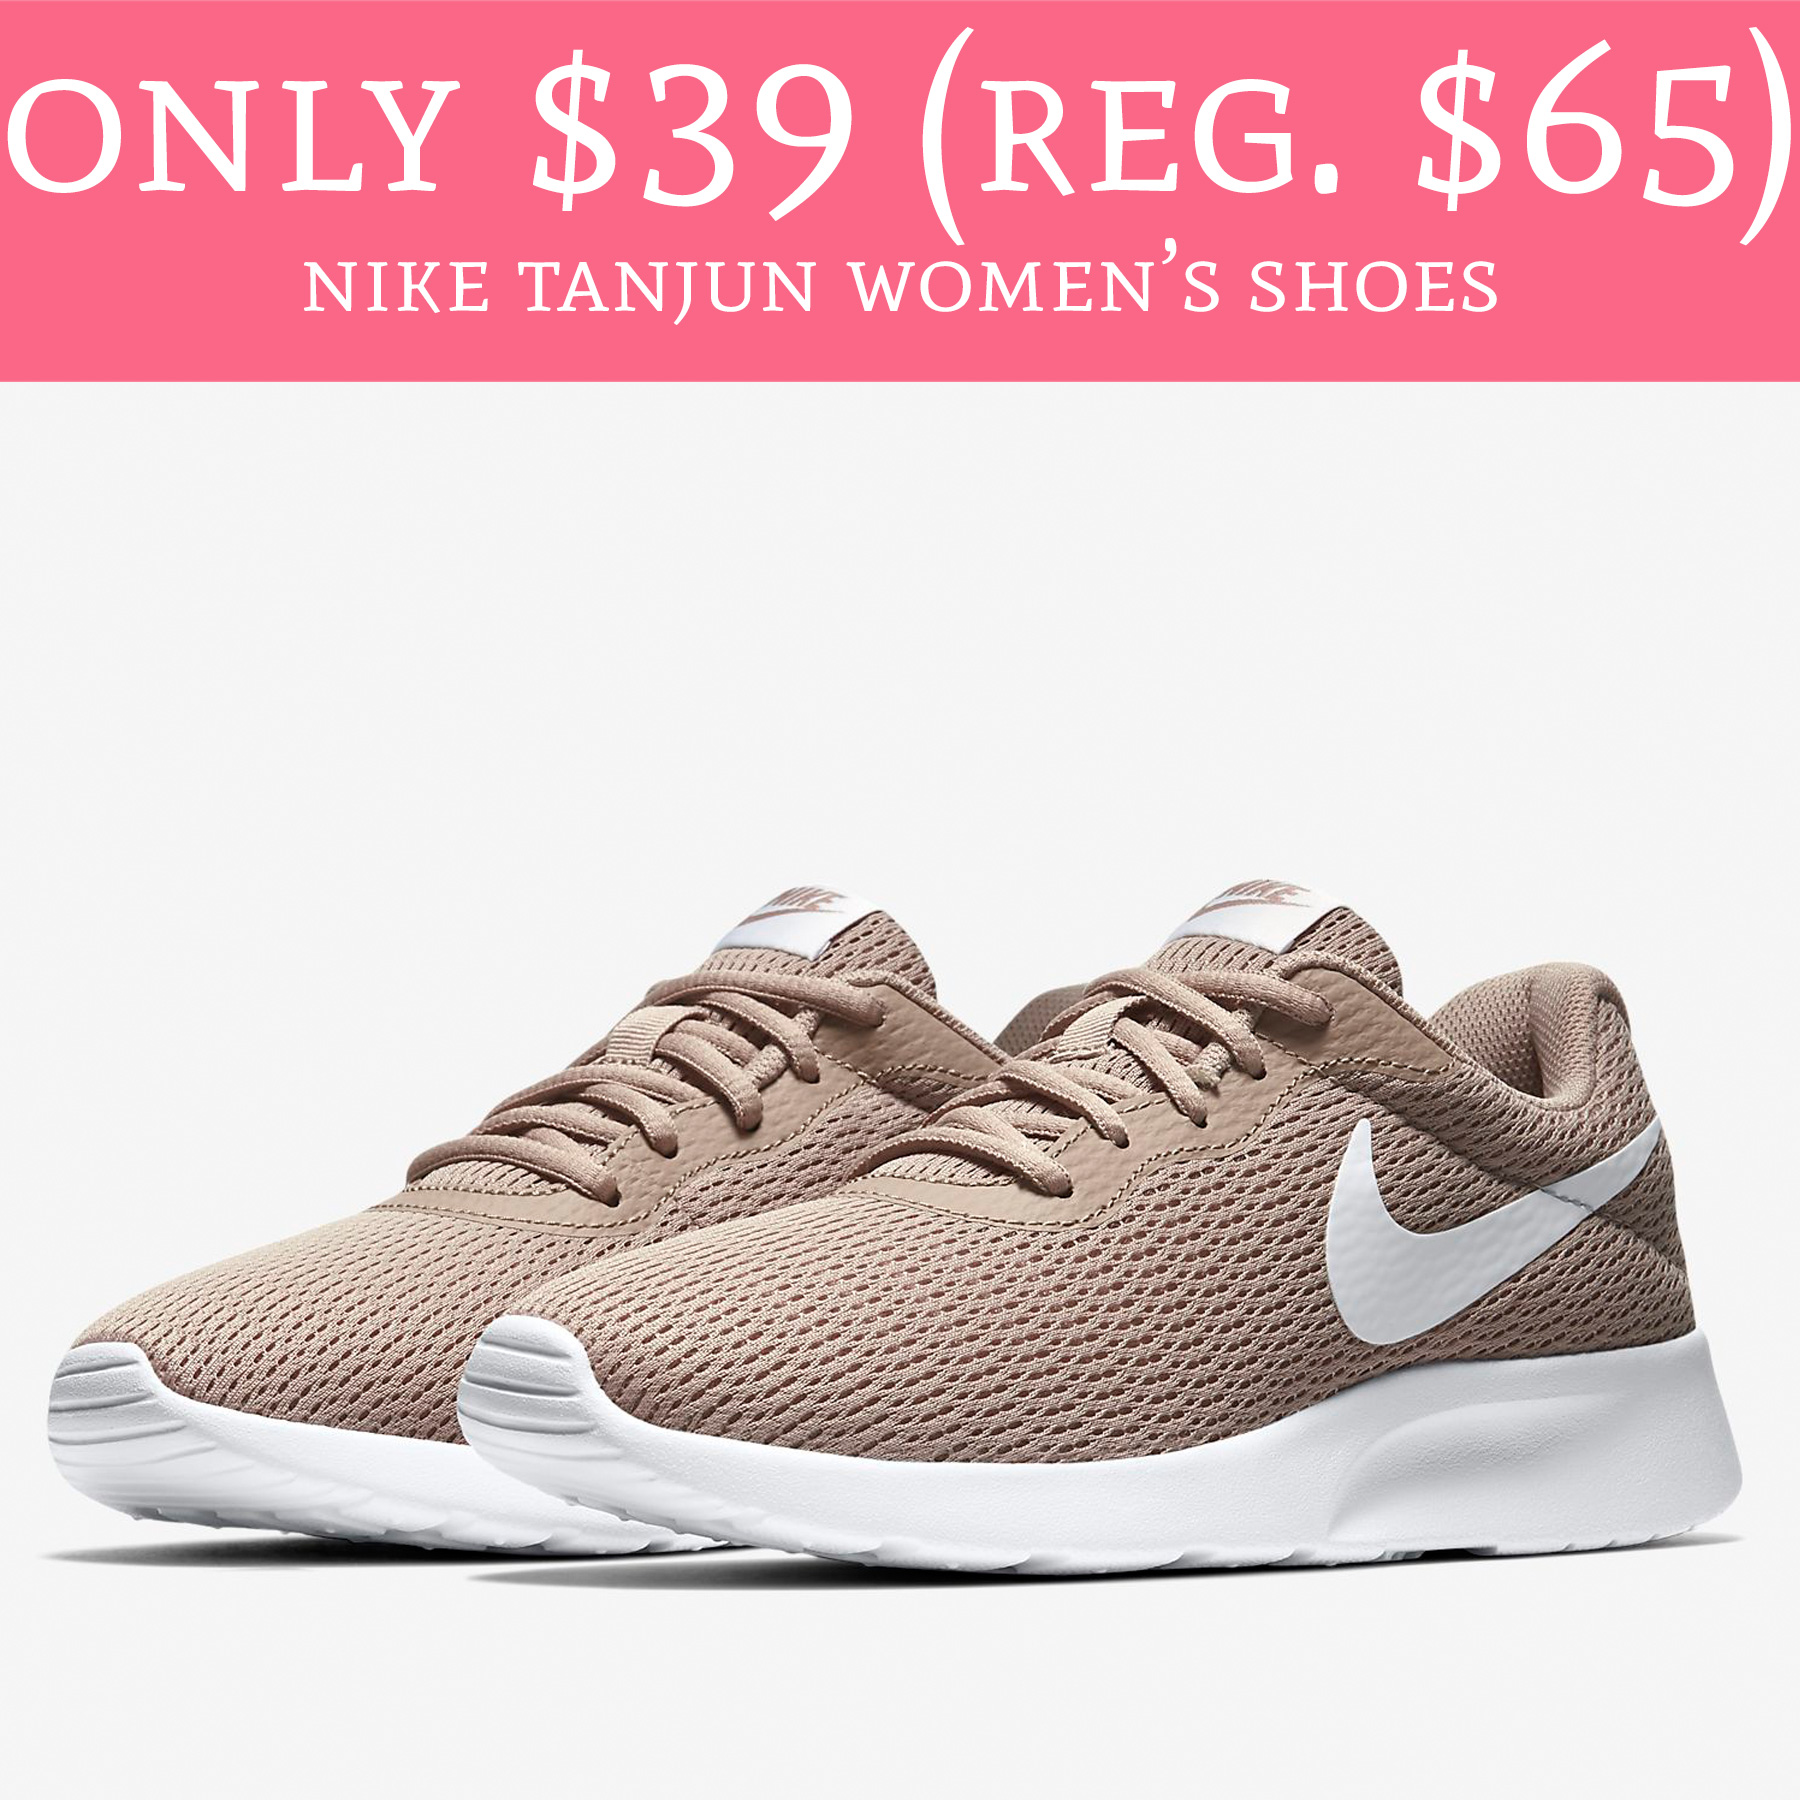 5d471a3303e3 Only  39 (Regular  65) Nike Tanjun Women s Shoes - Deal Hunting Babe